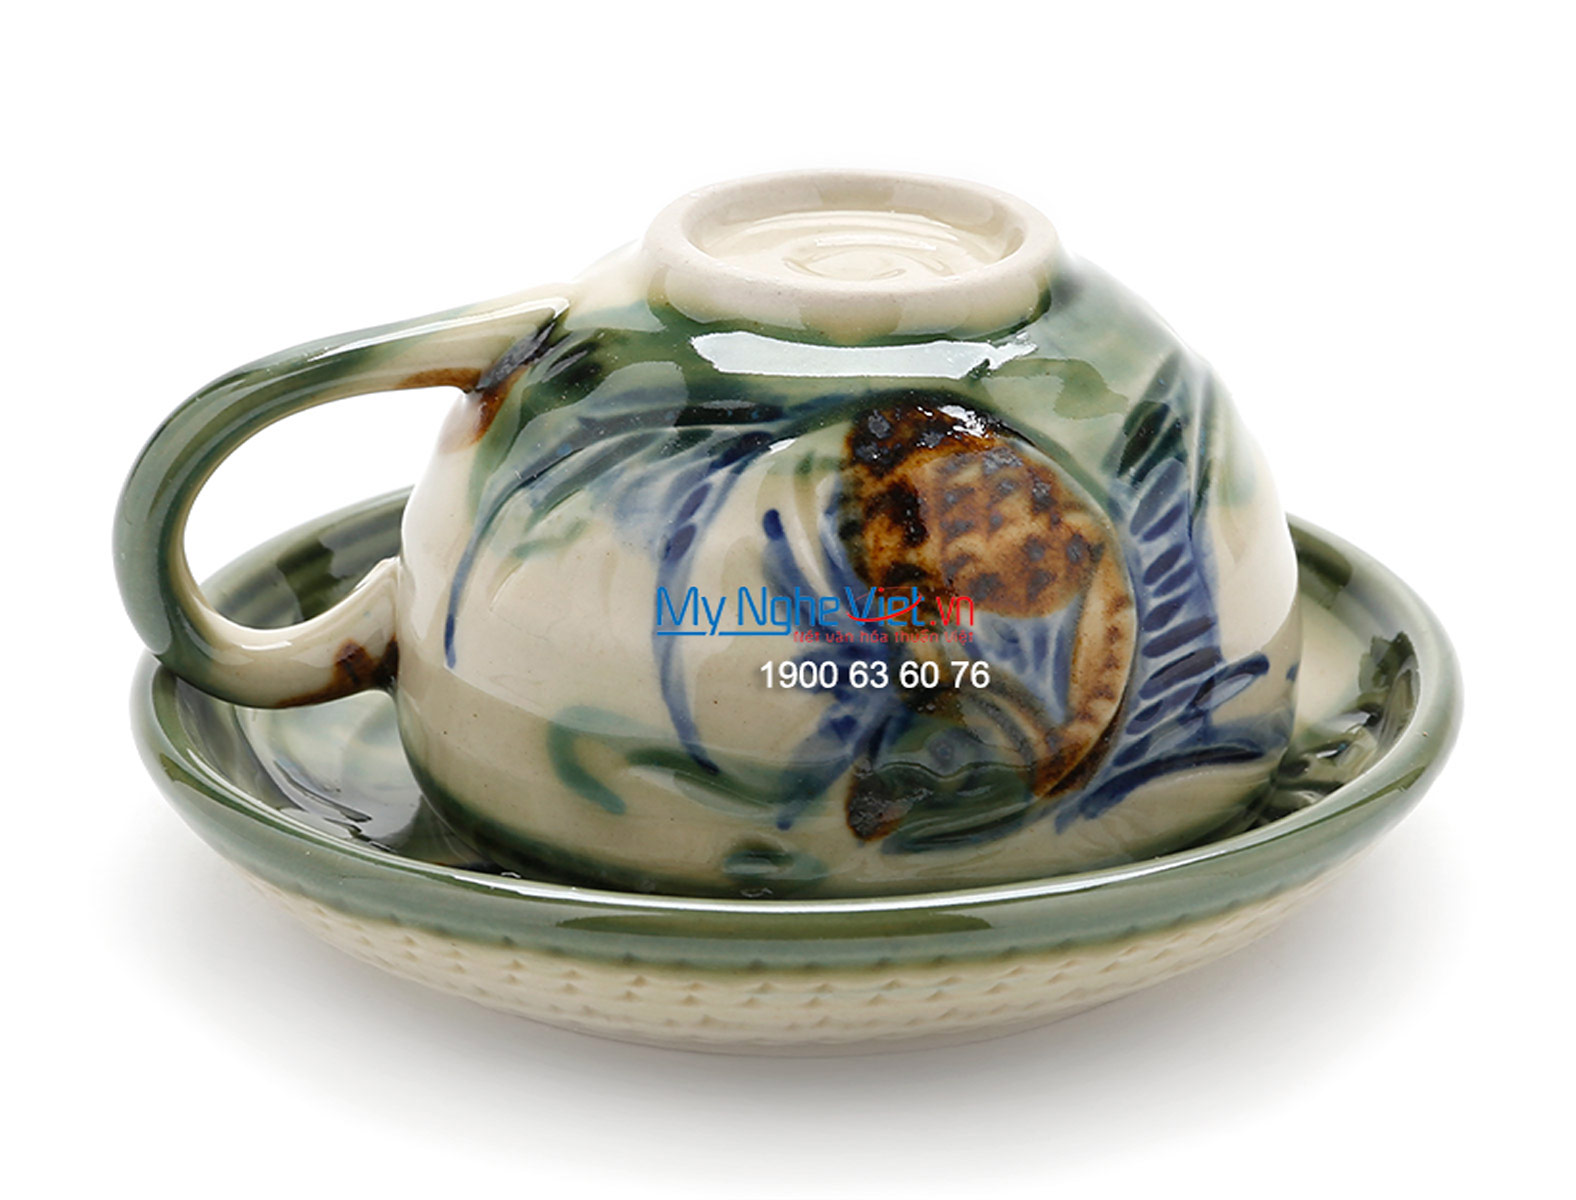 Bat Trang Tea Set with Glossy Glaze, Fish Painting with Pottery Strap MNV-TS029-2